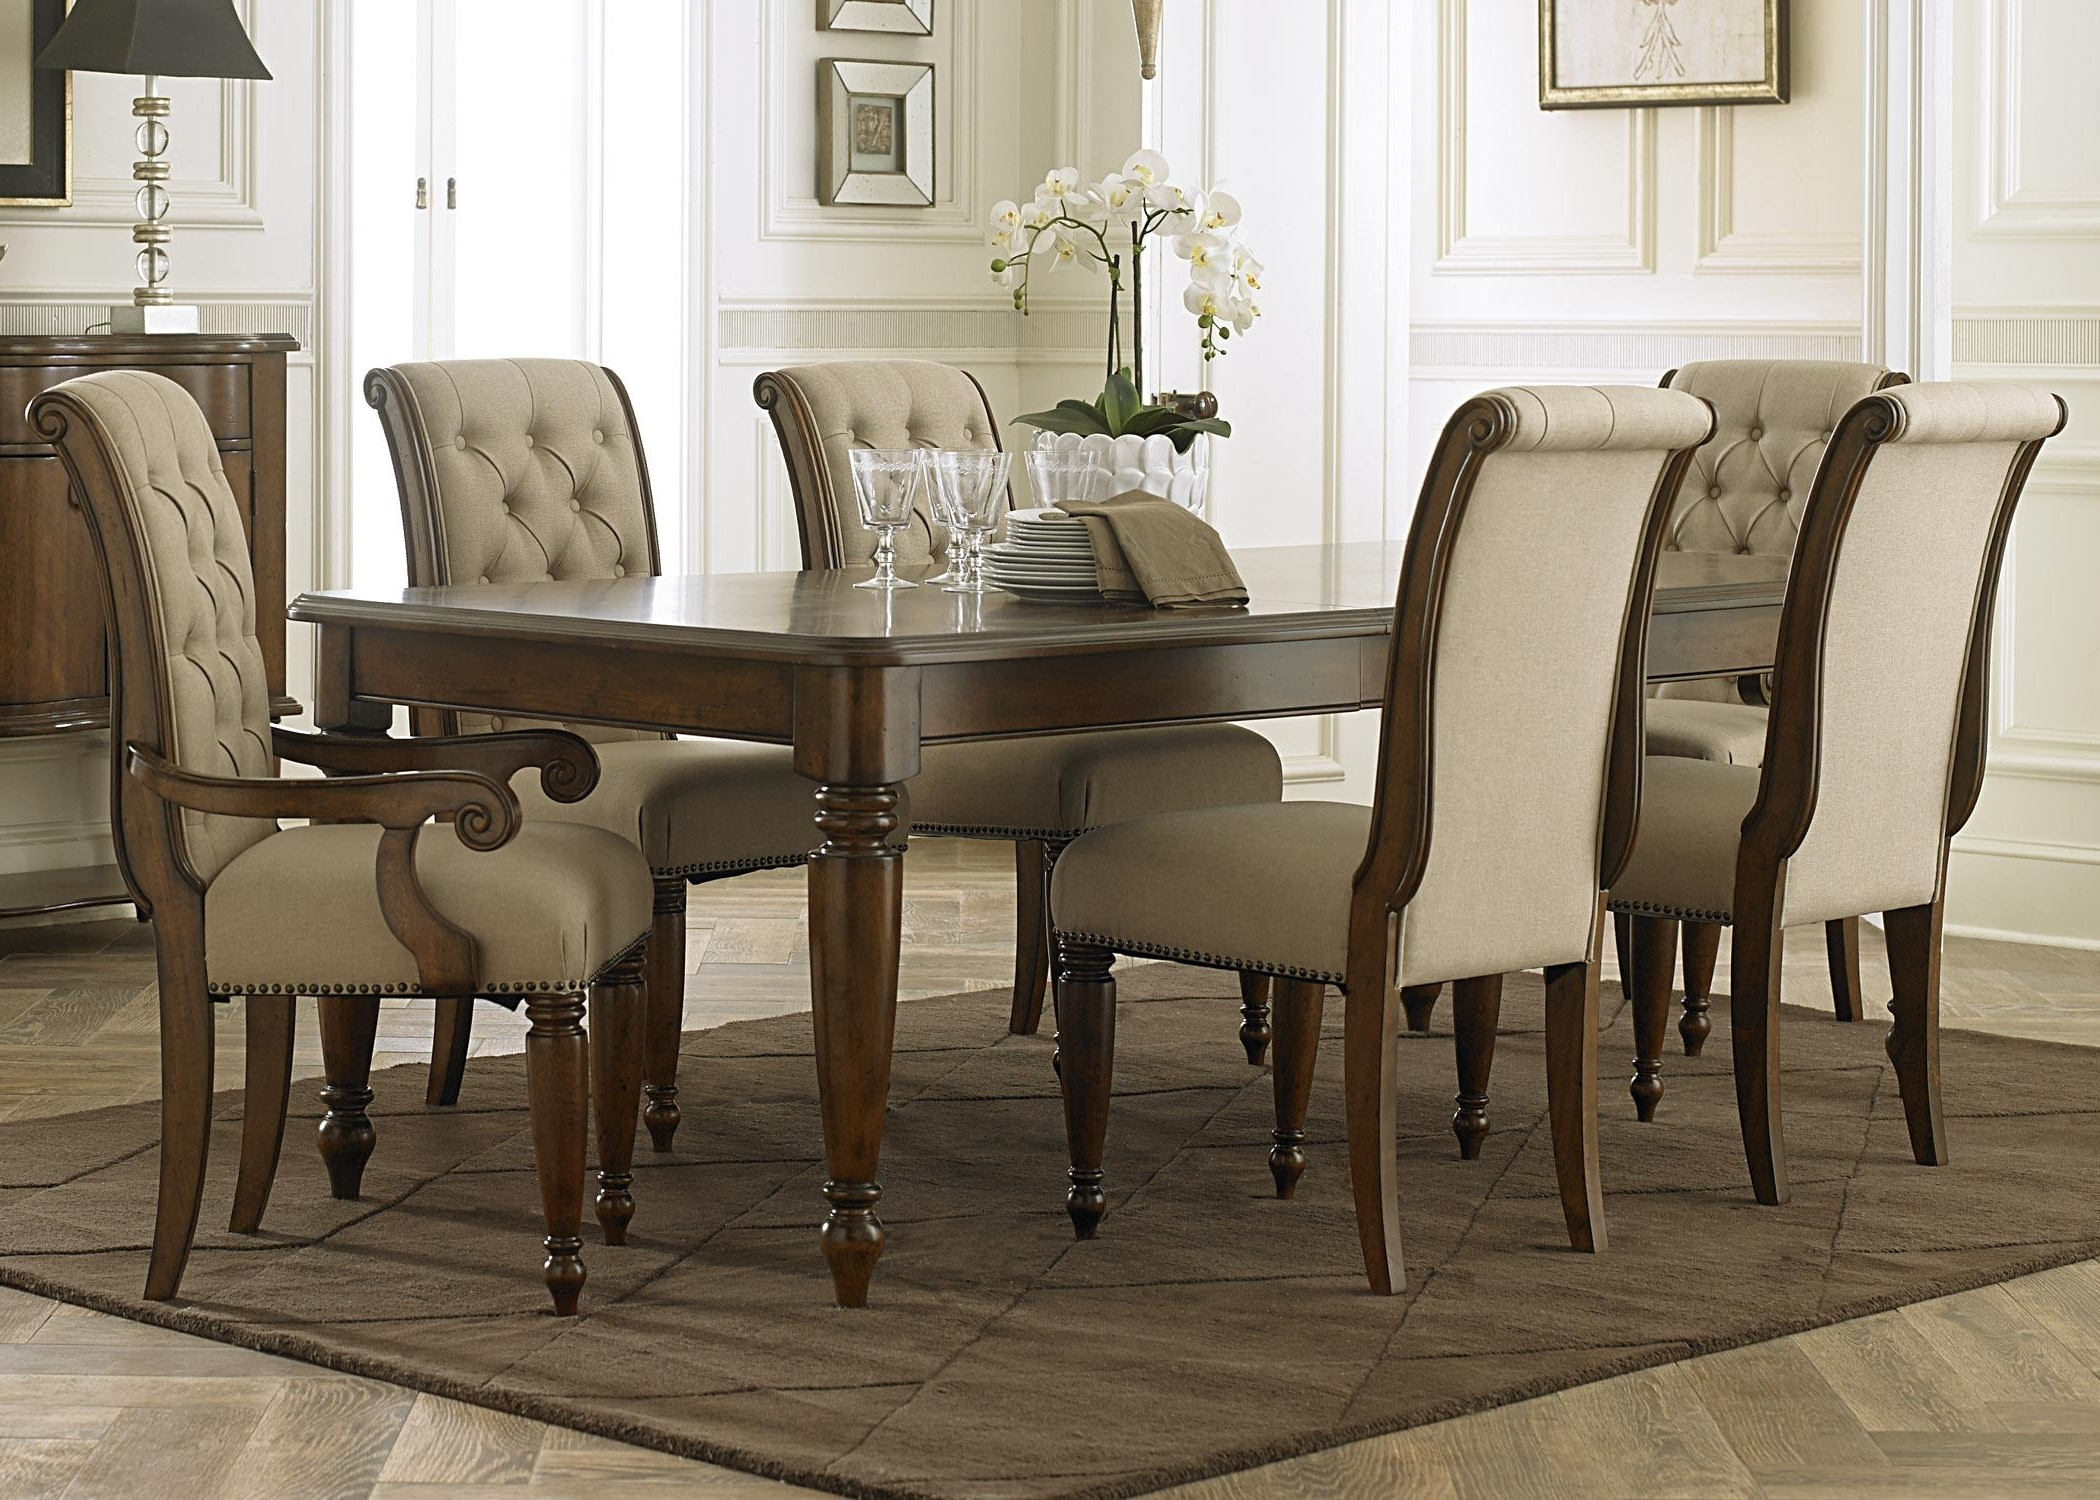 Widely Used Cotswold 7 Piece Rectangular Table Setliberty Furniture At Northeast  Factory Direct With Cotswold Dining Tables (View 25 of 25)